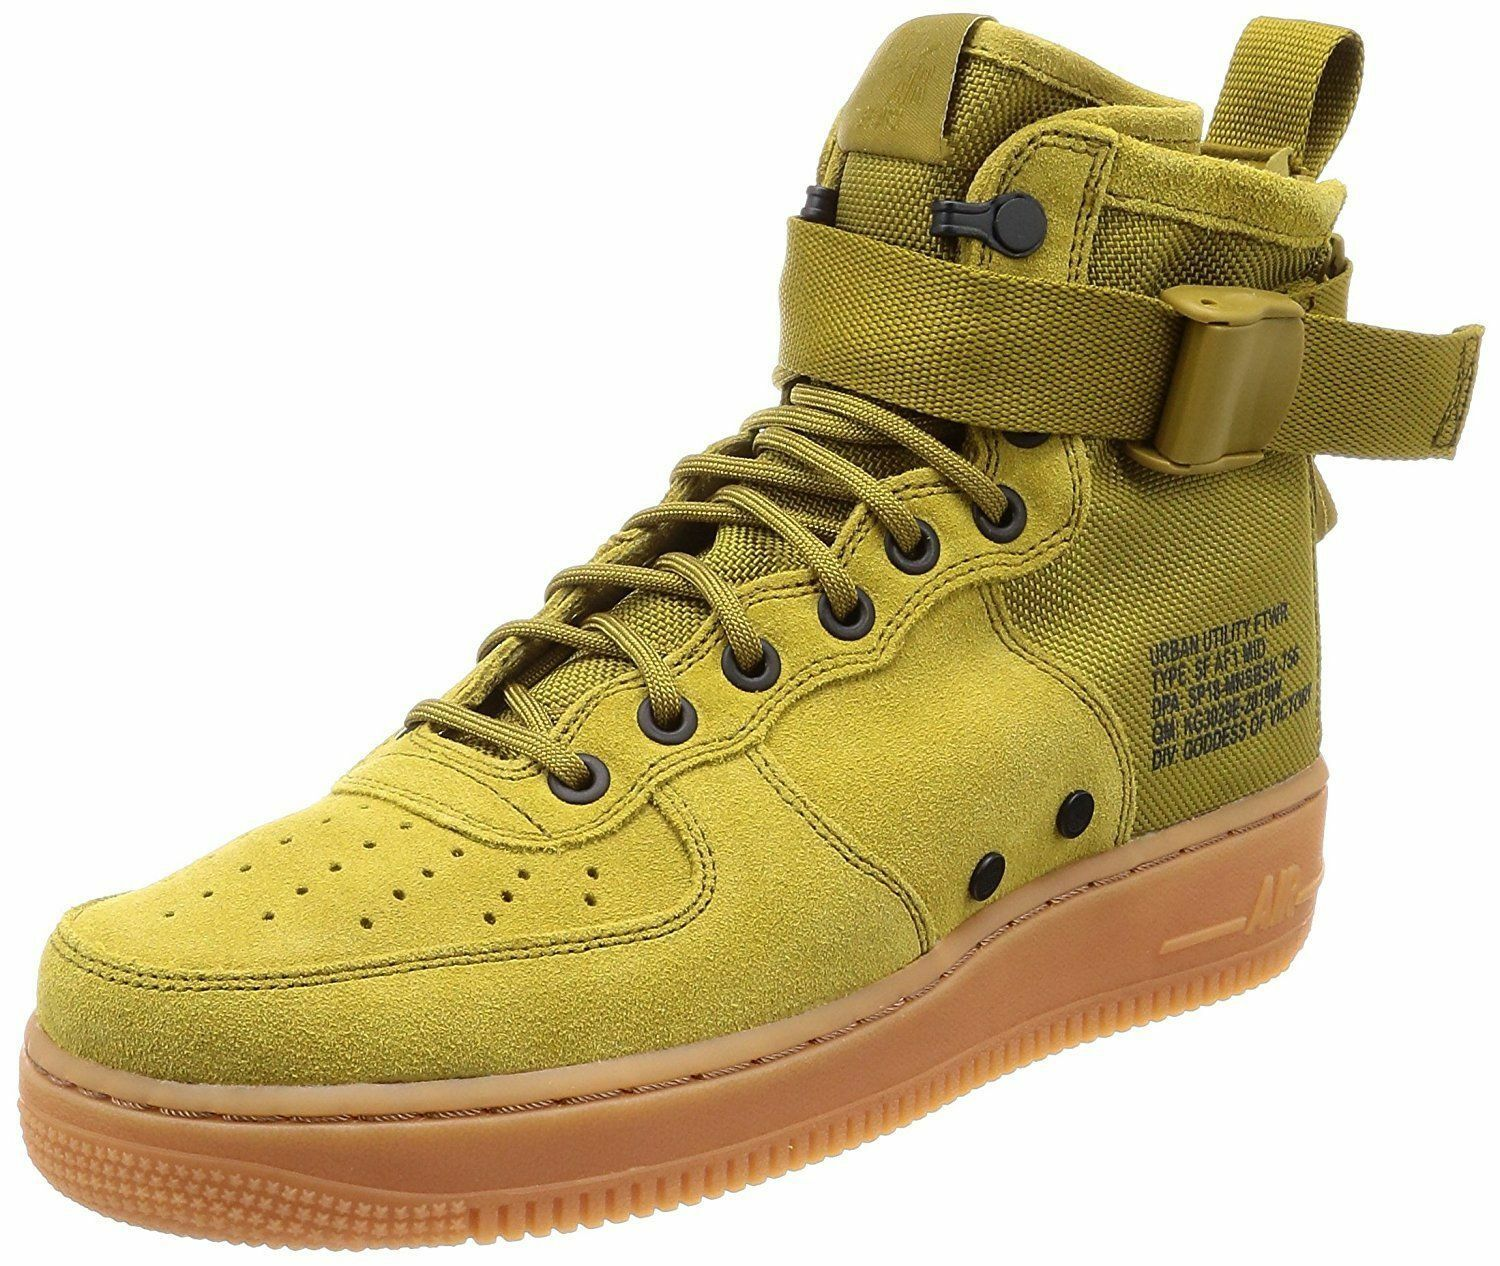 Nike Hommes SF AF1 Mid Casual Chaussures Special Field Green beige 917753-301 SZ 12